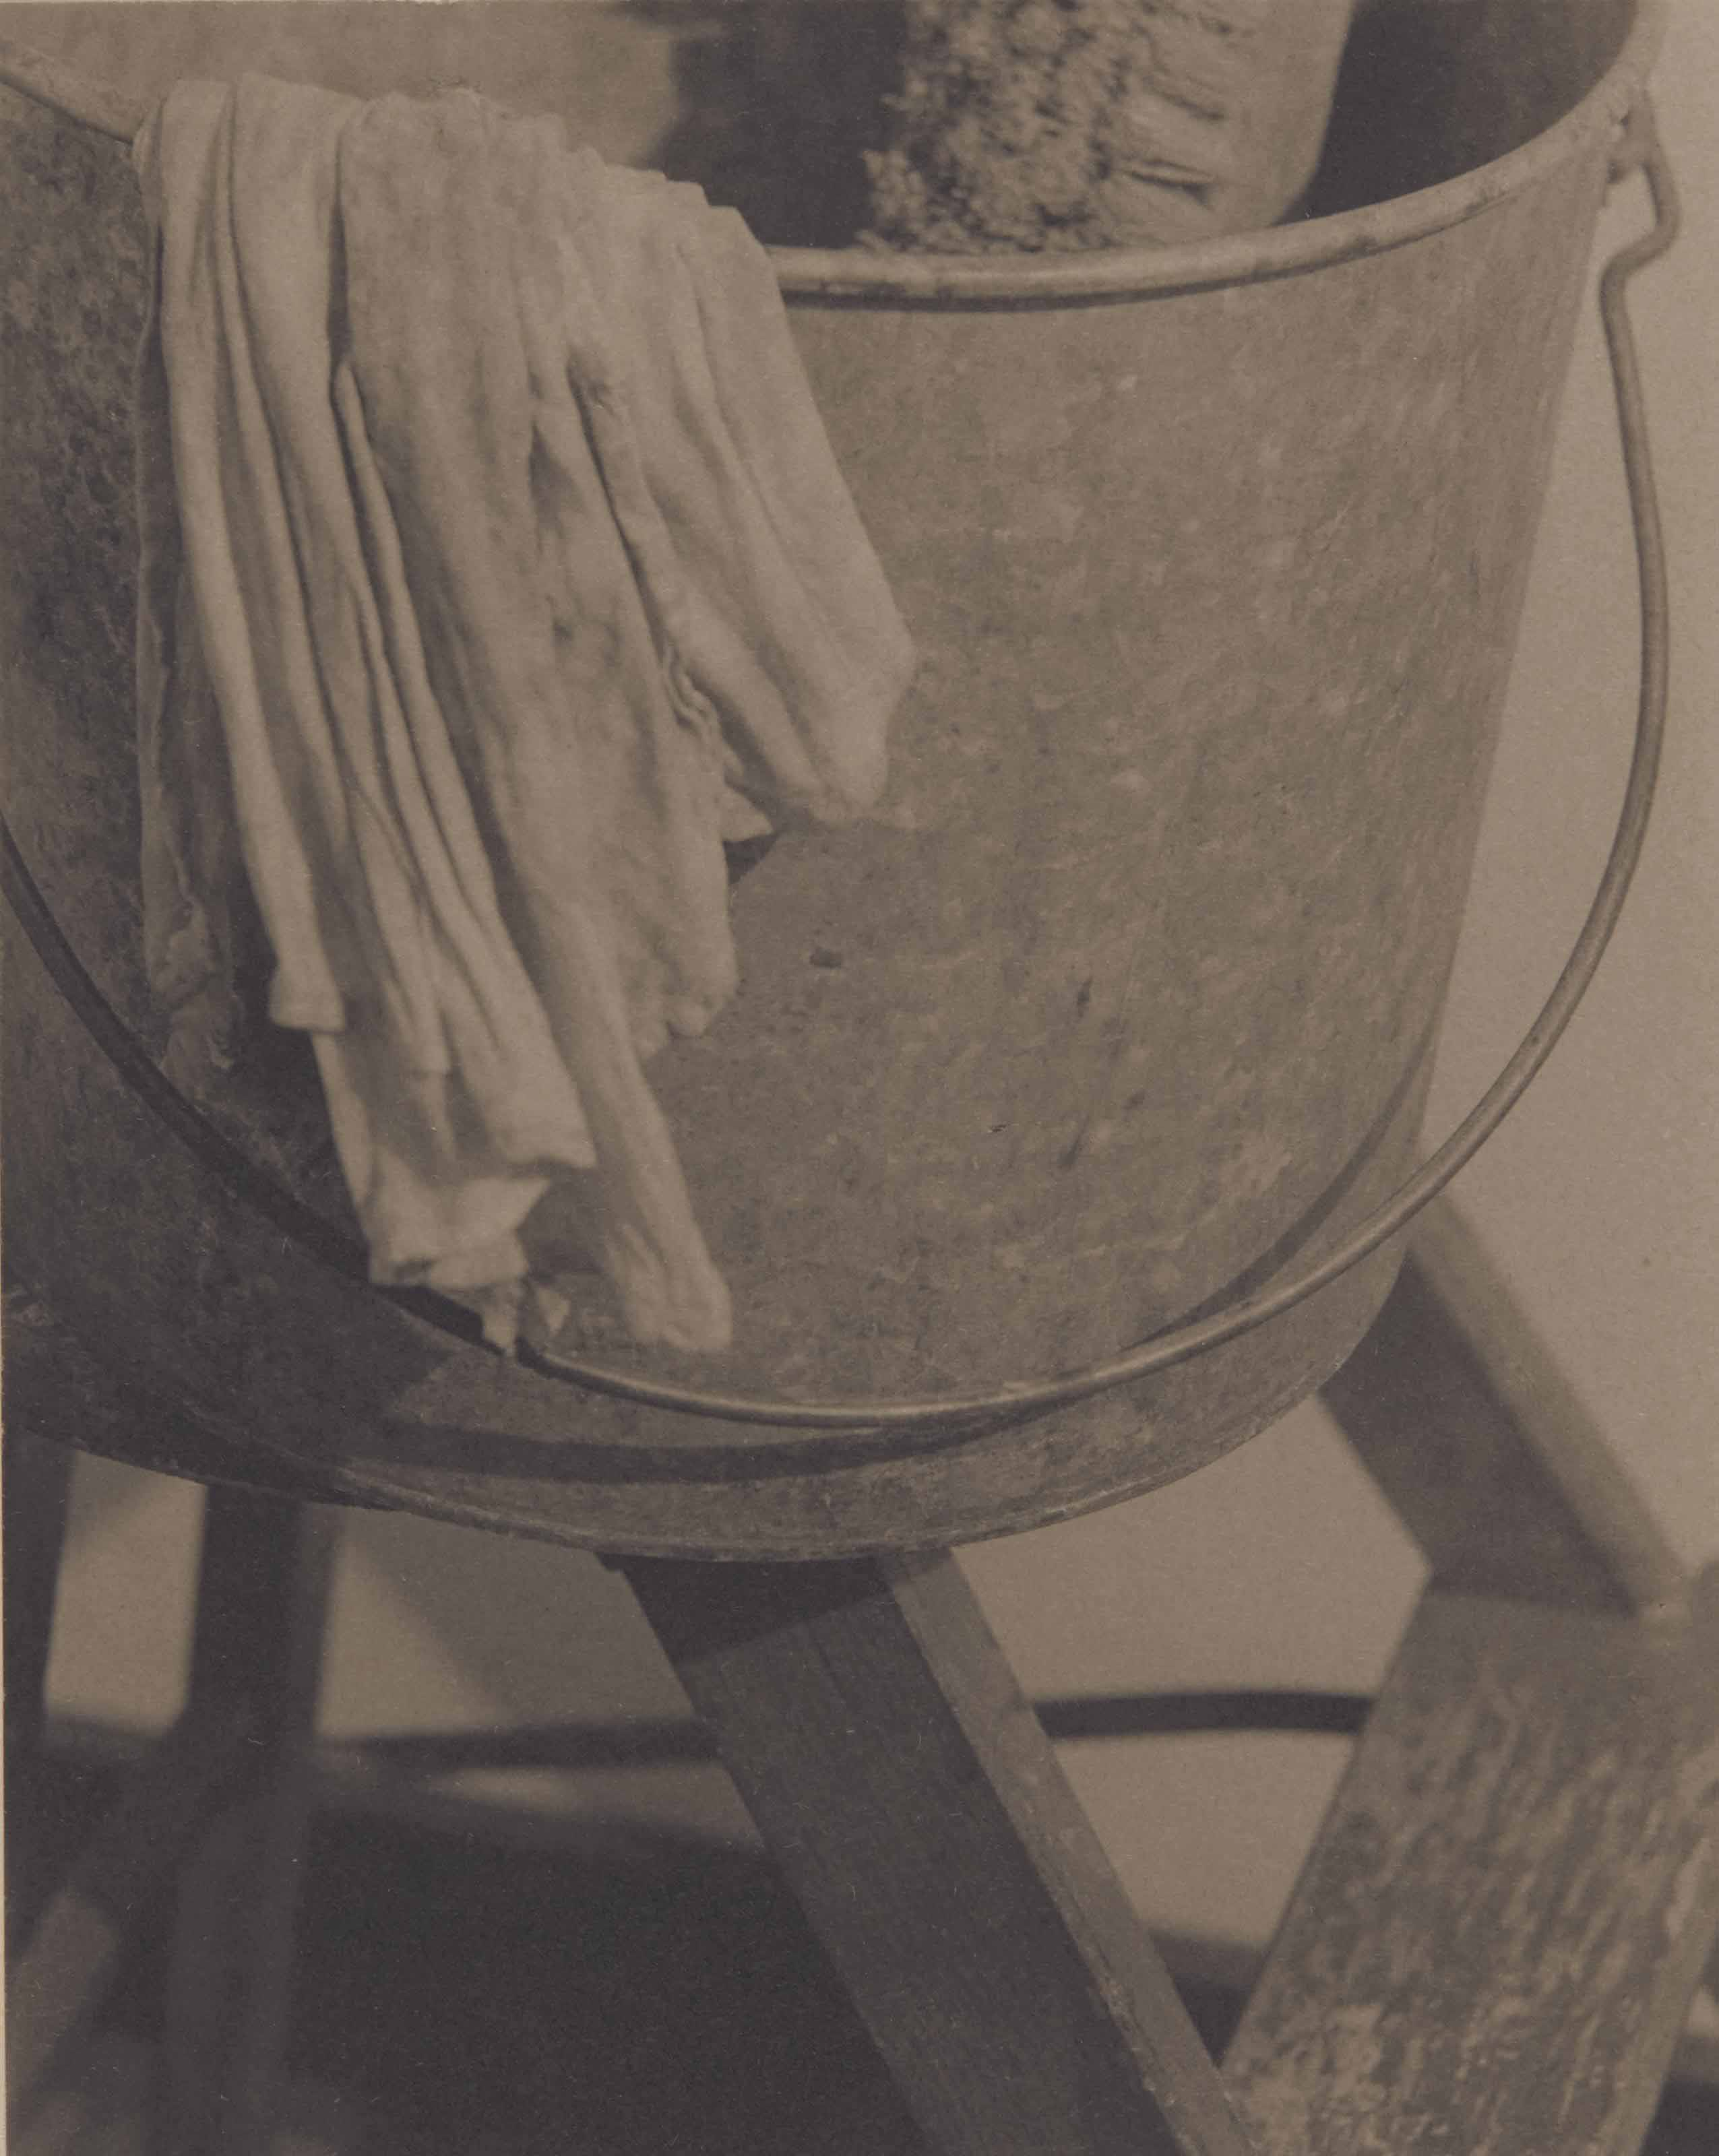 Pail on ladder, 1922